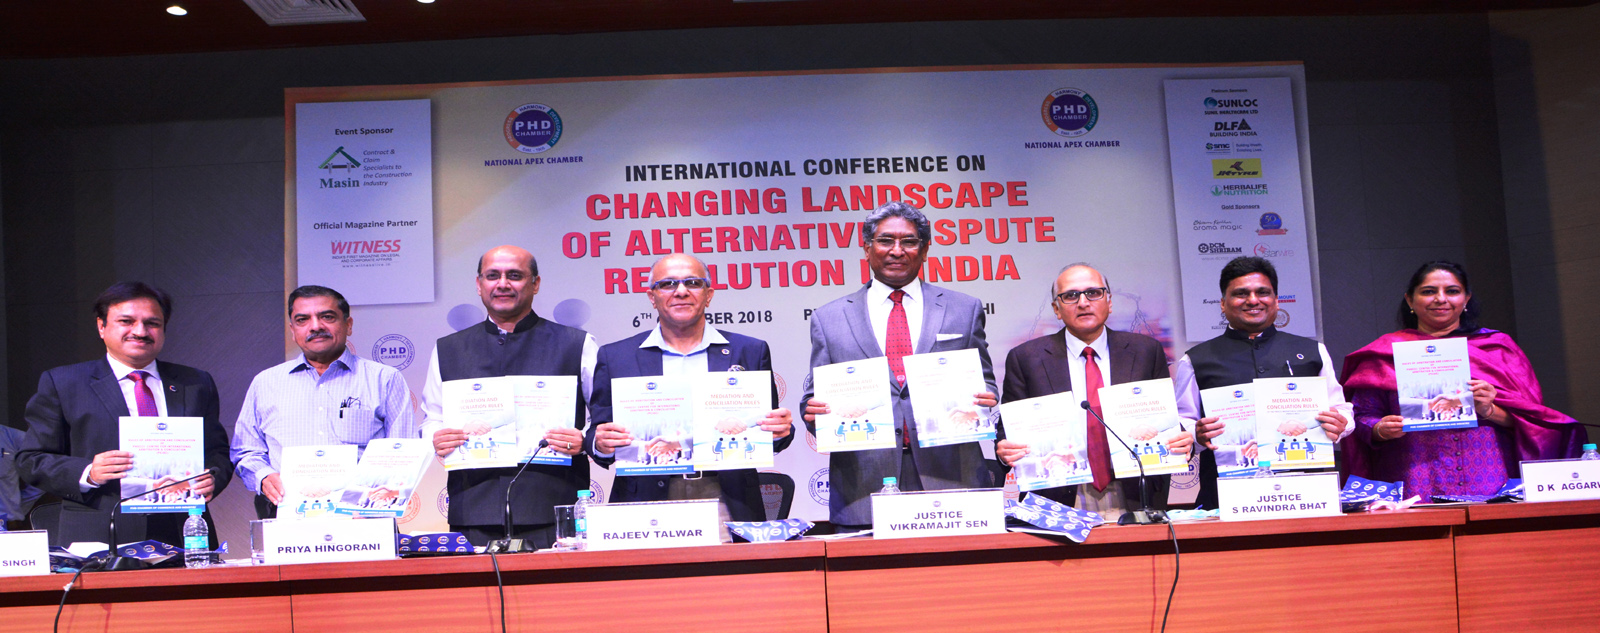 International Conference on Changing Landscape of Alternative Dispute Resolution in India